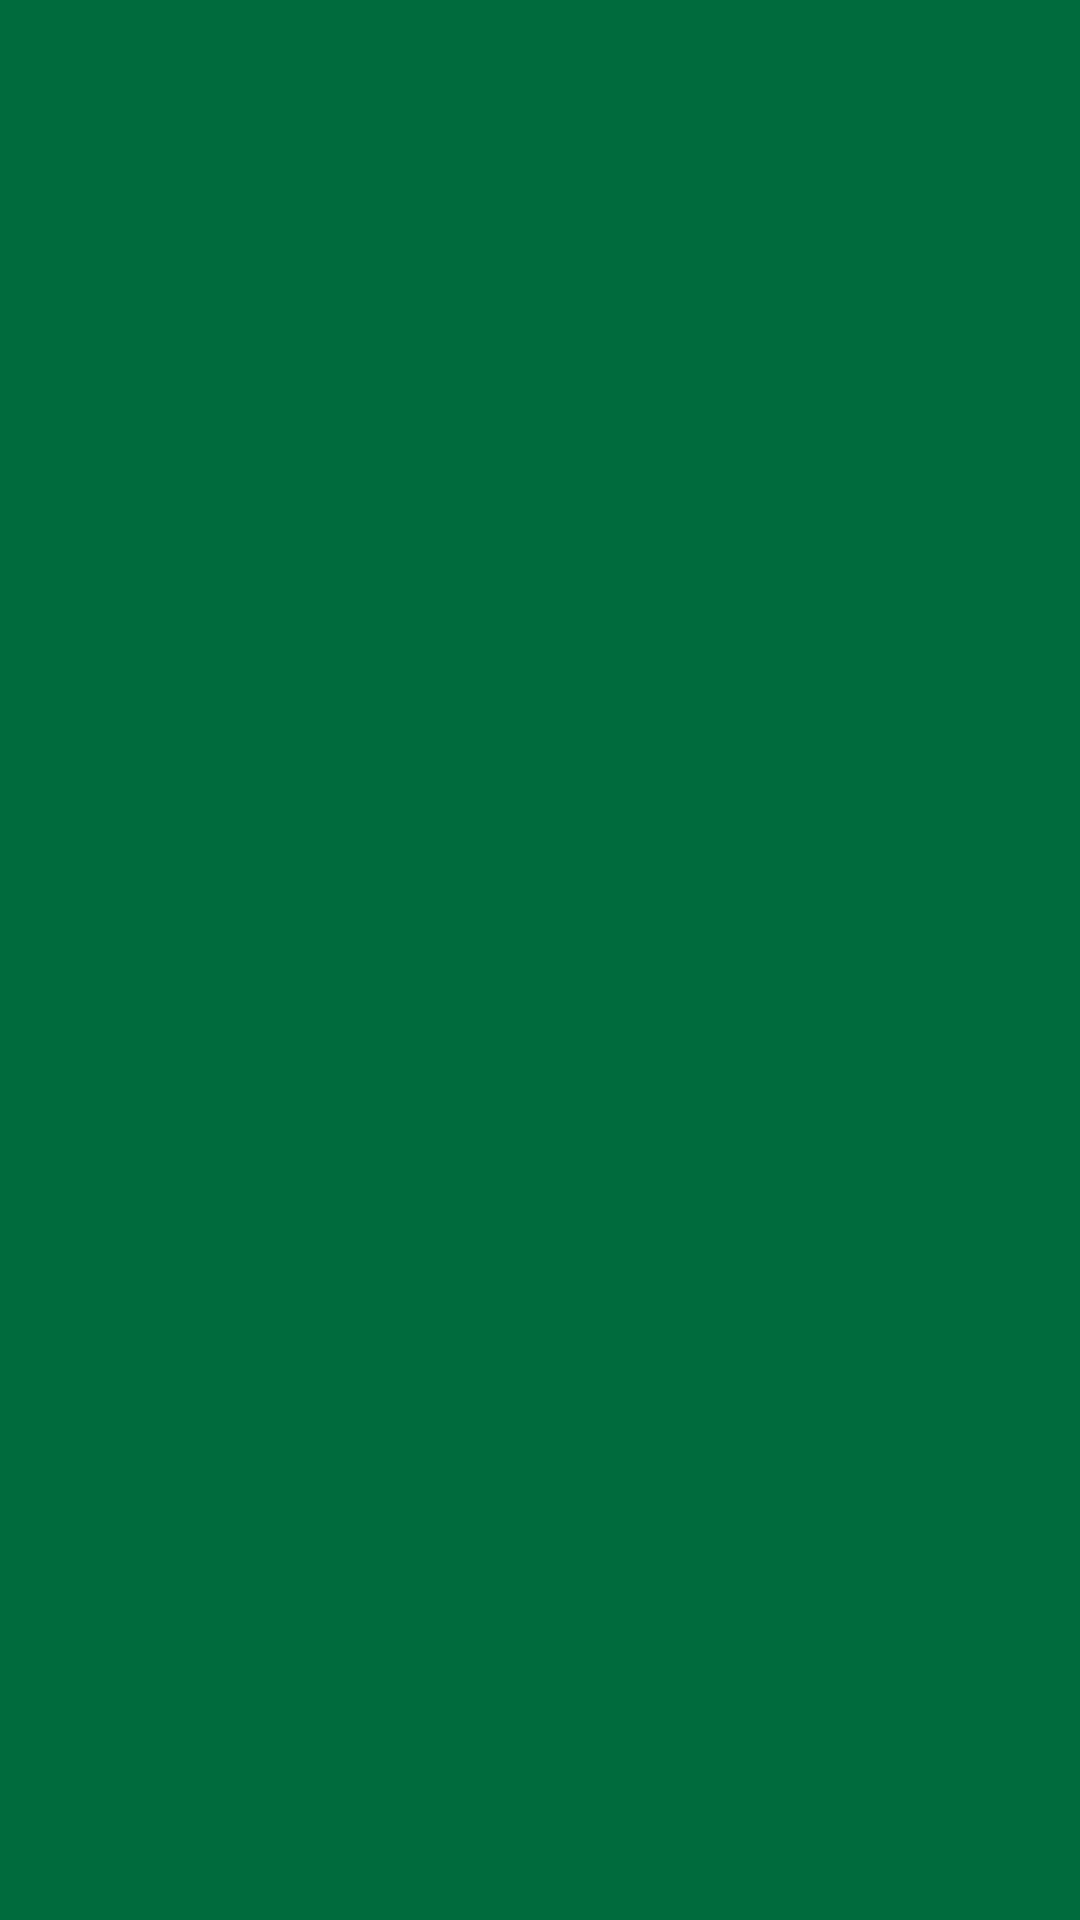 1080x1920 Cadmium Green Solid Color Background